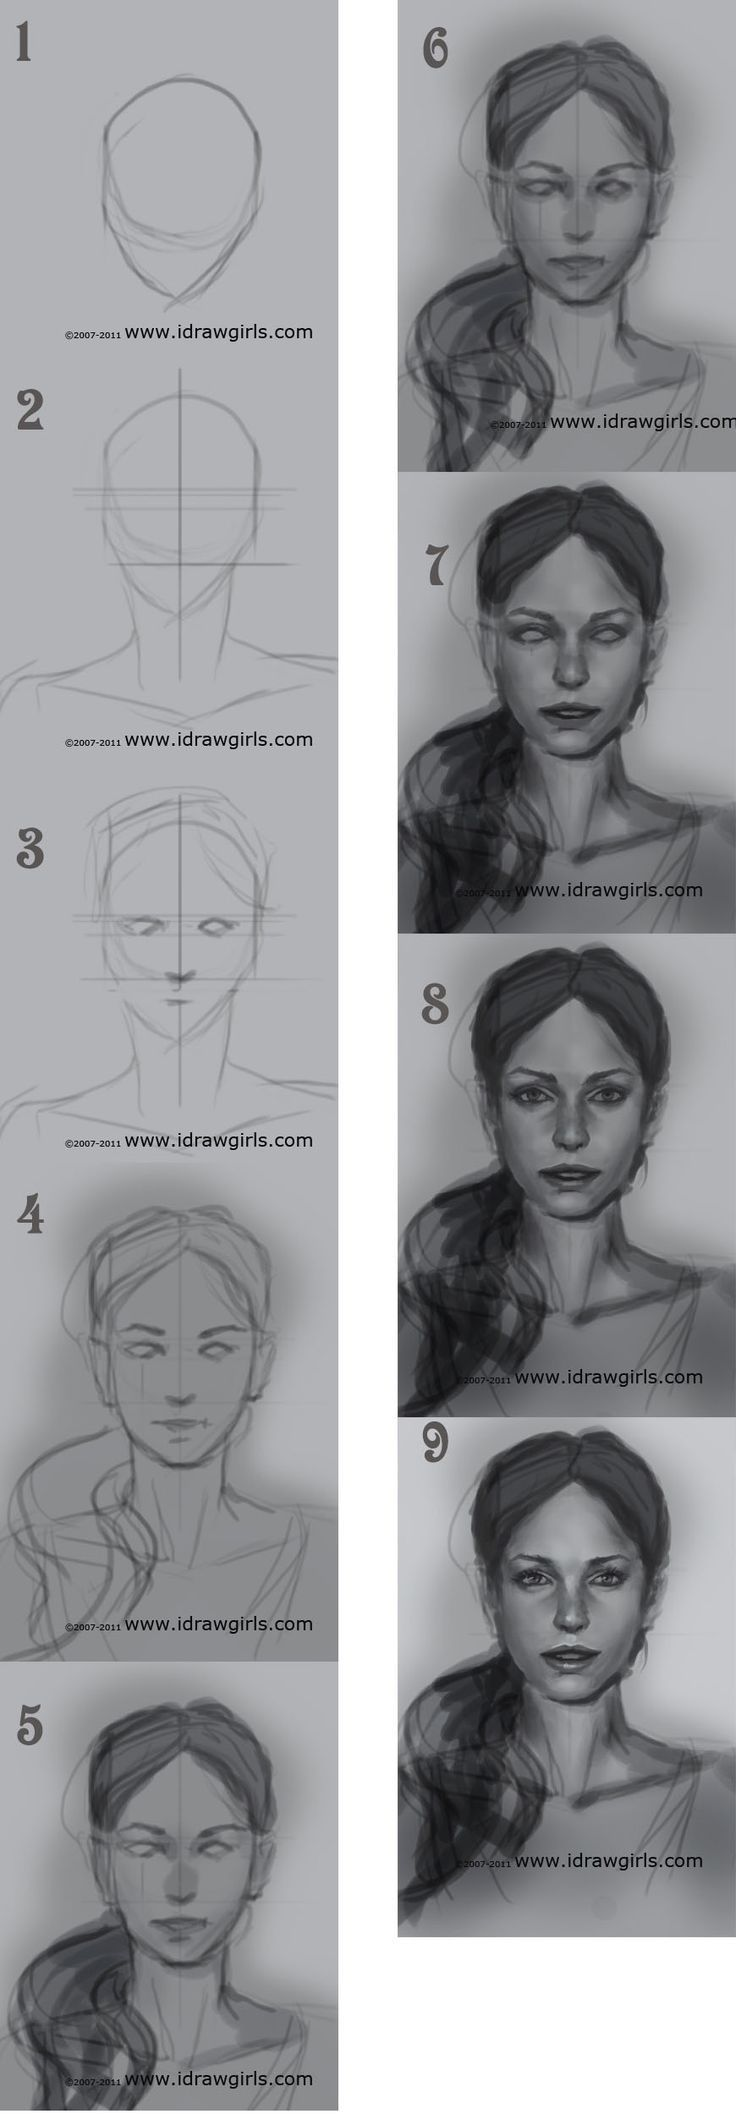 How to draw a female face: